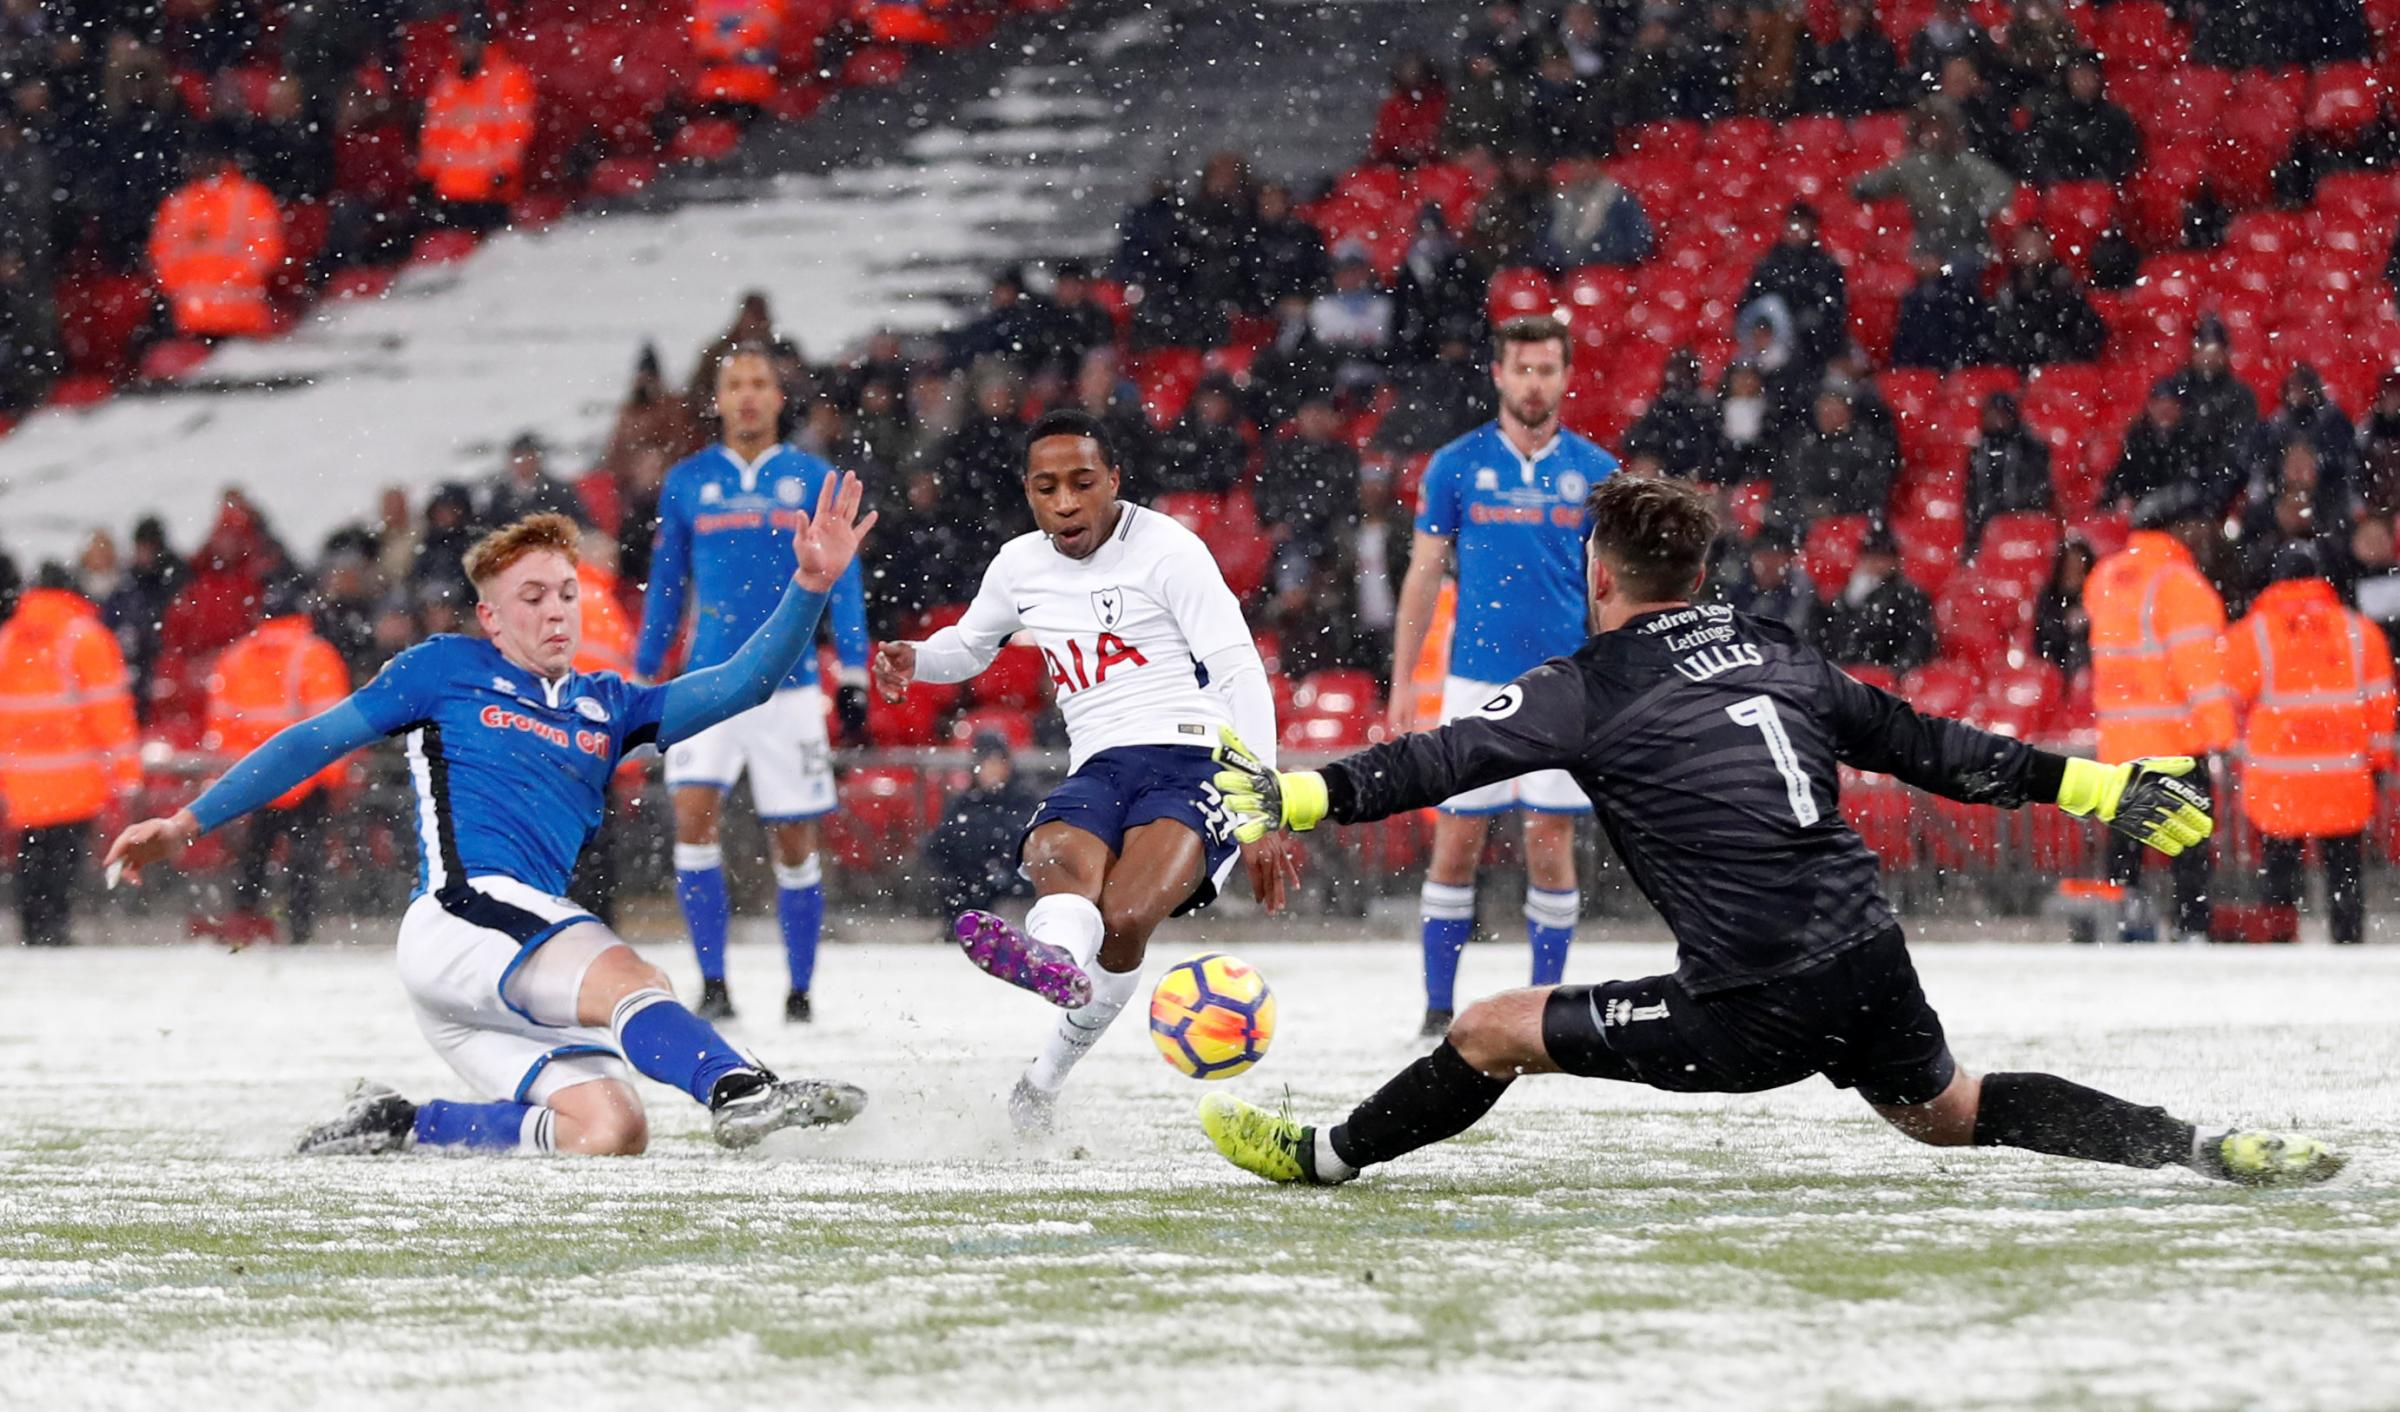 Kyle Walker-Peters rounds off the scoring in the Wembley snow. Picture: Action Images